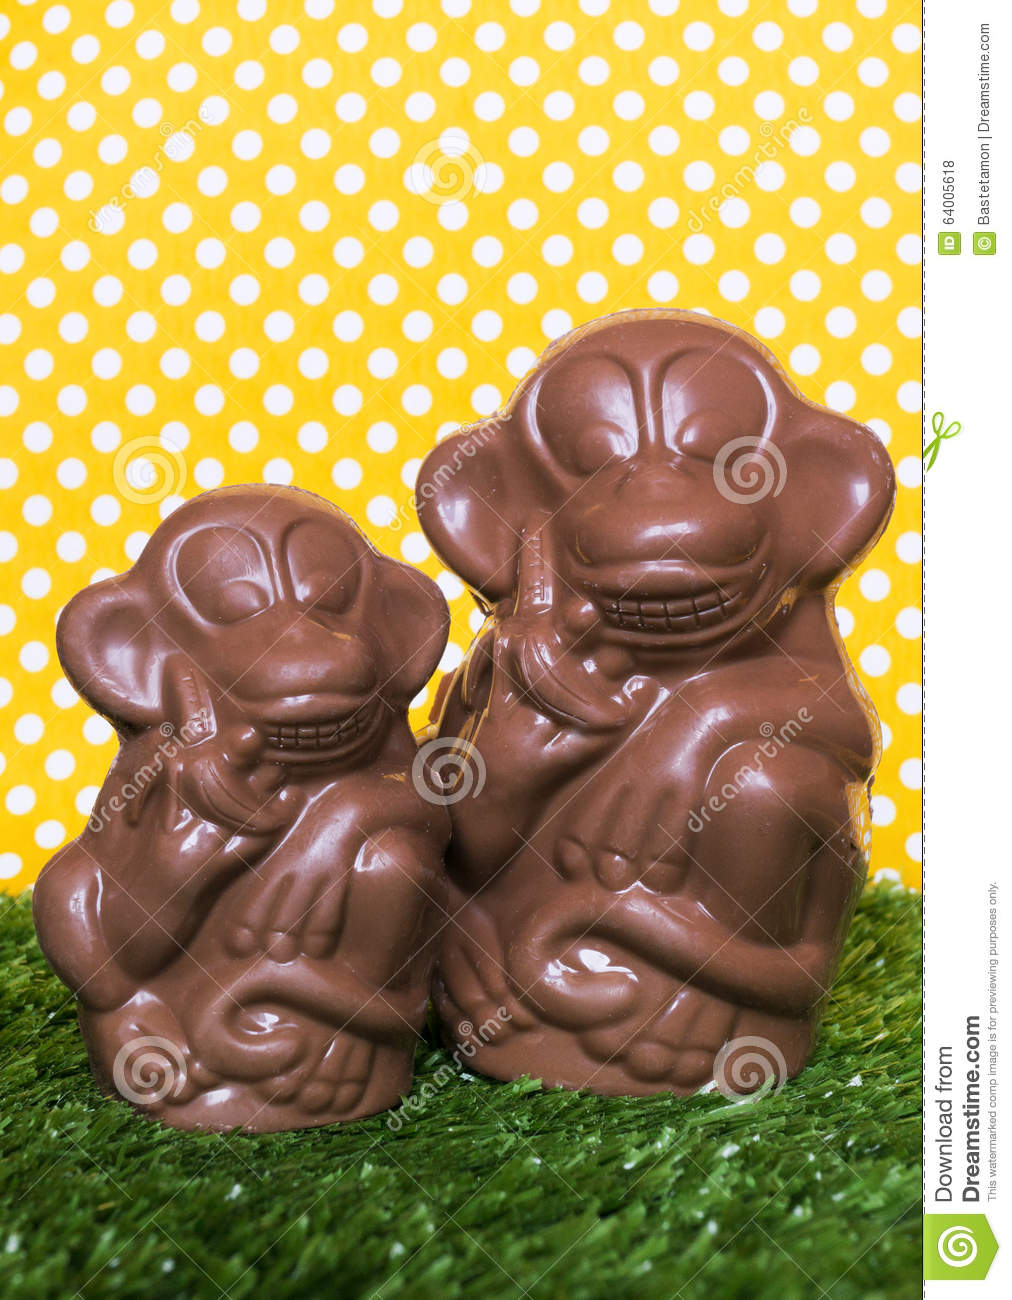 Chocolate Monkey On The Grass Stock Photo - Image: 64005618